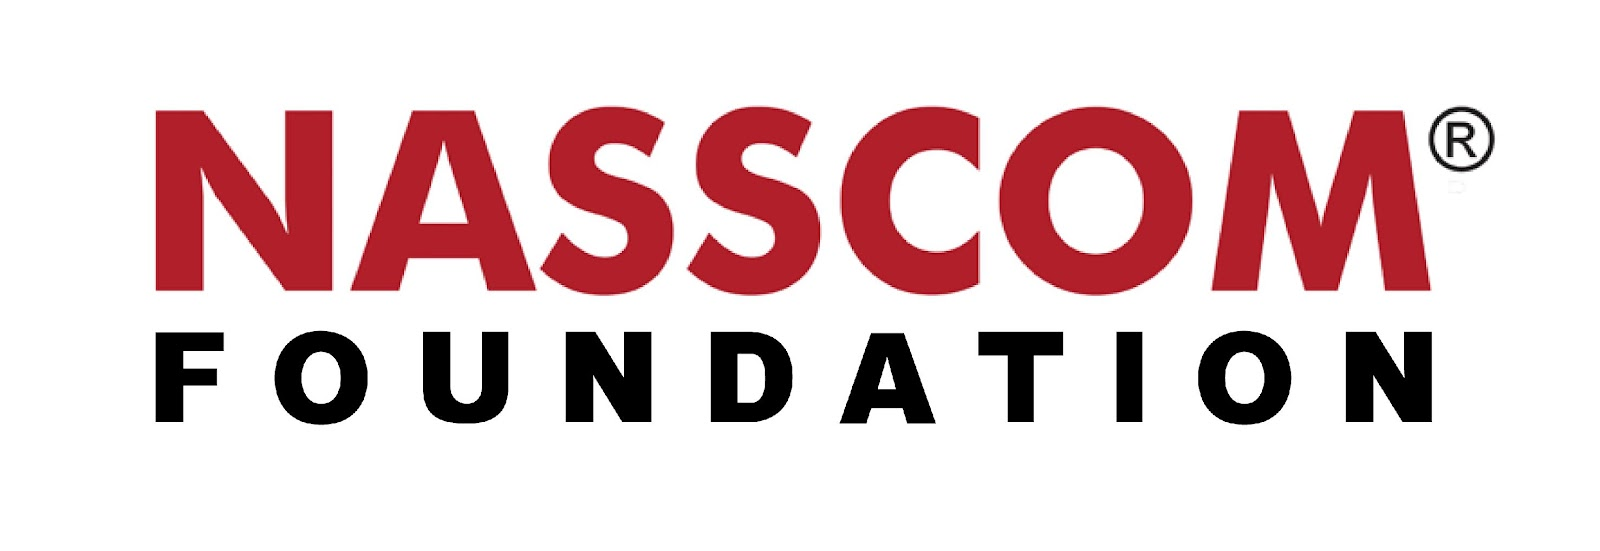 NASSCOM-Foundation-Logo